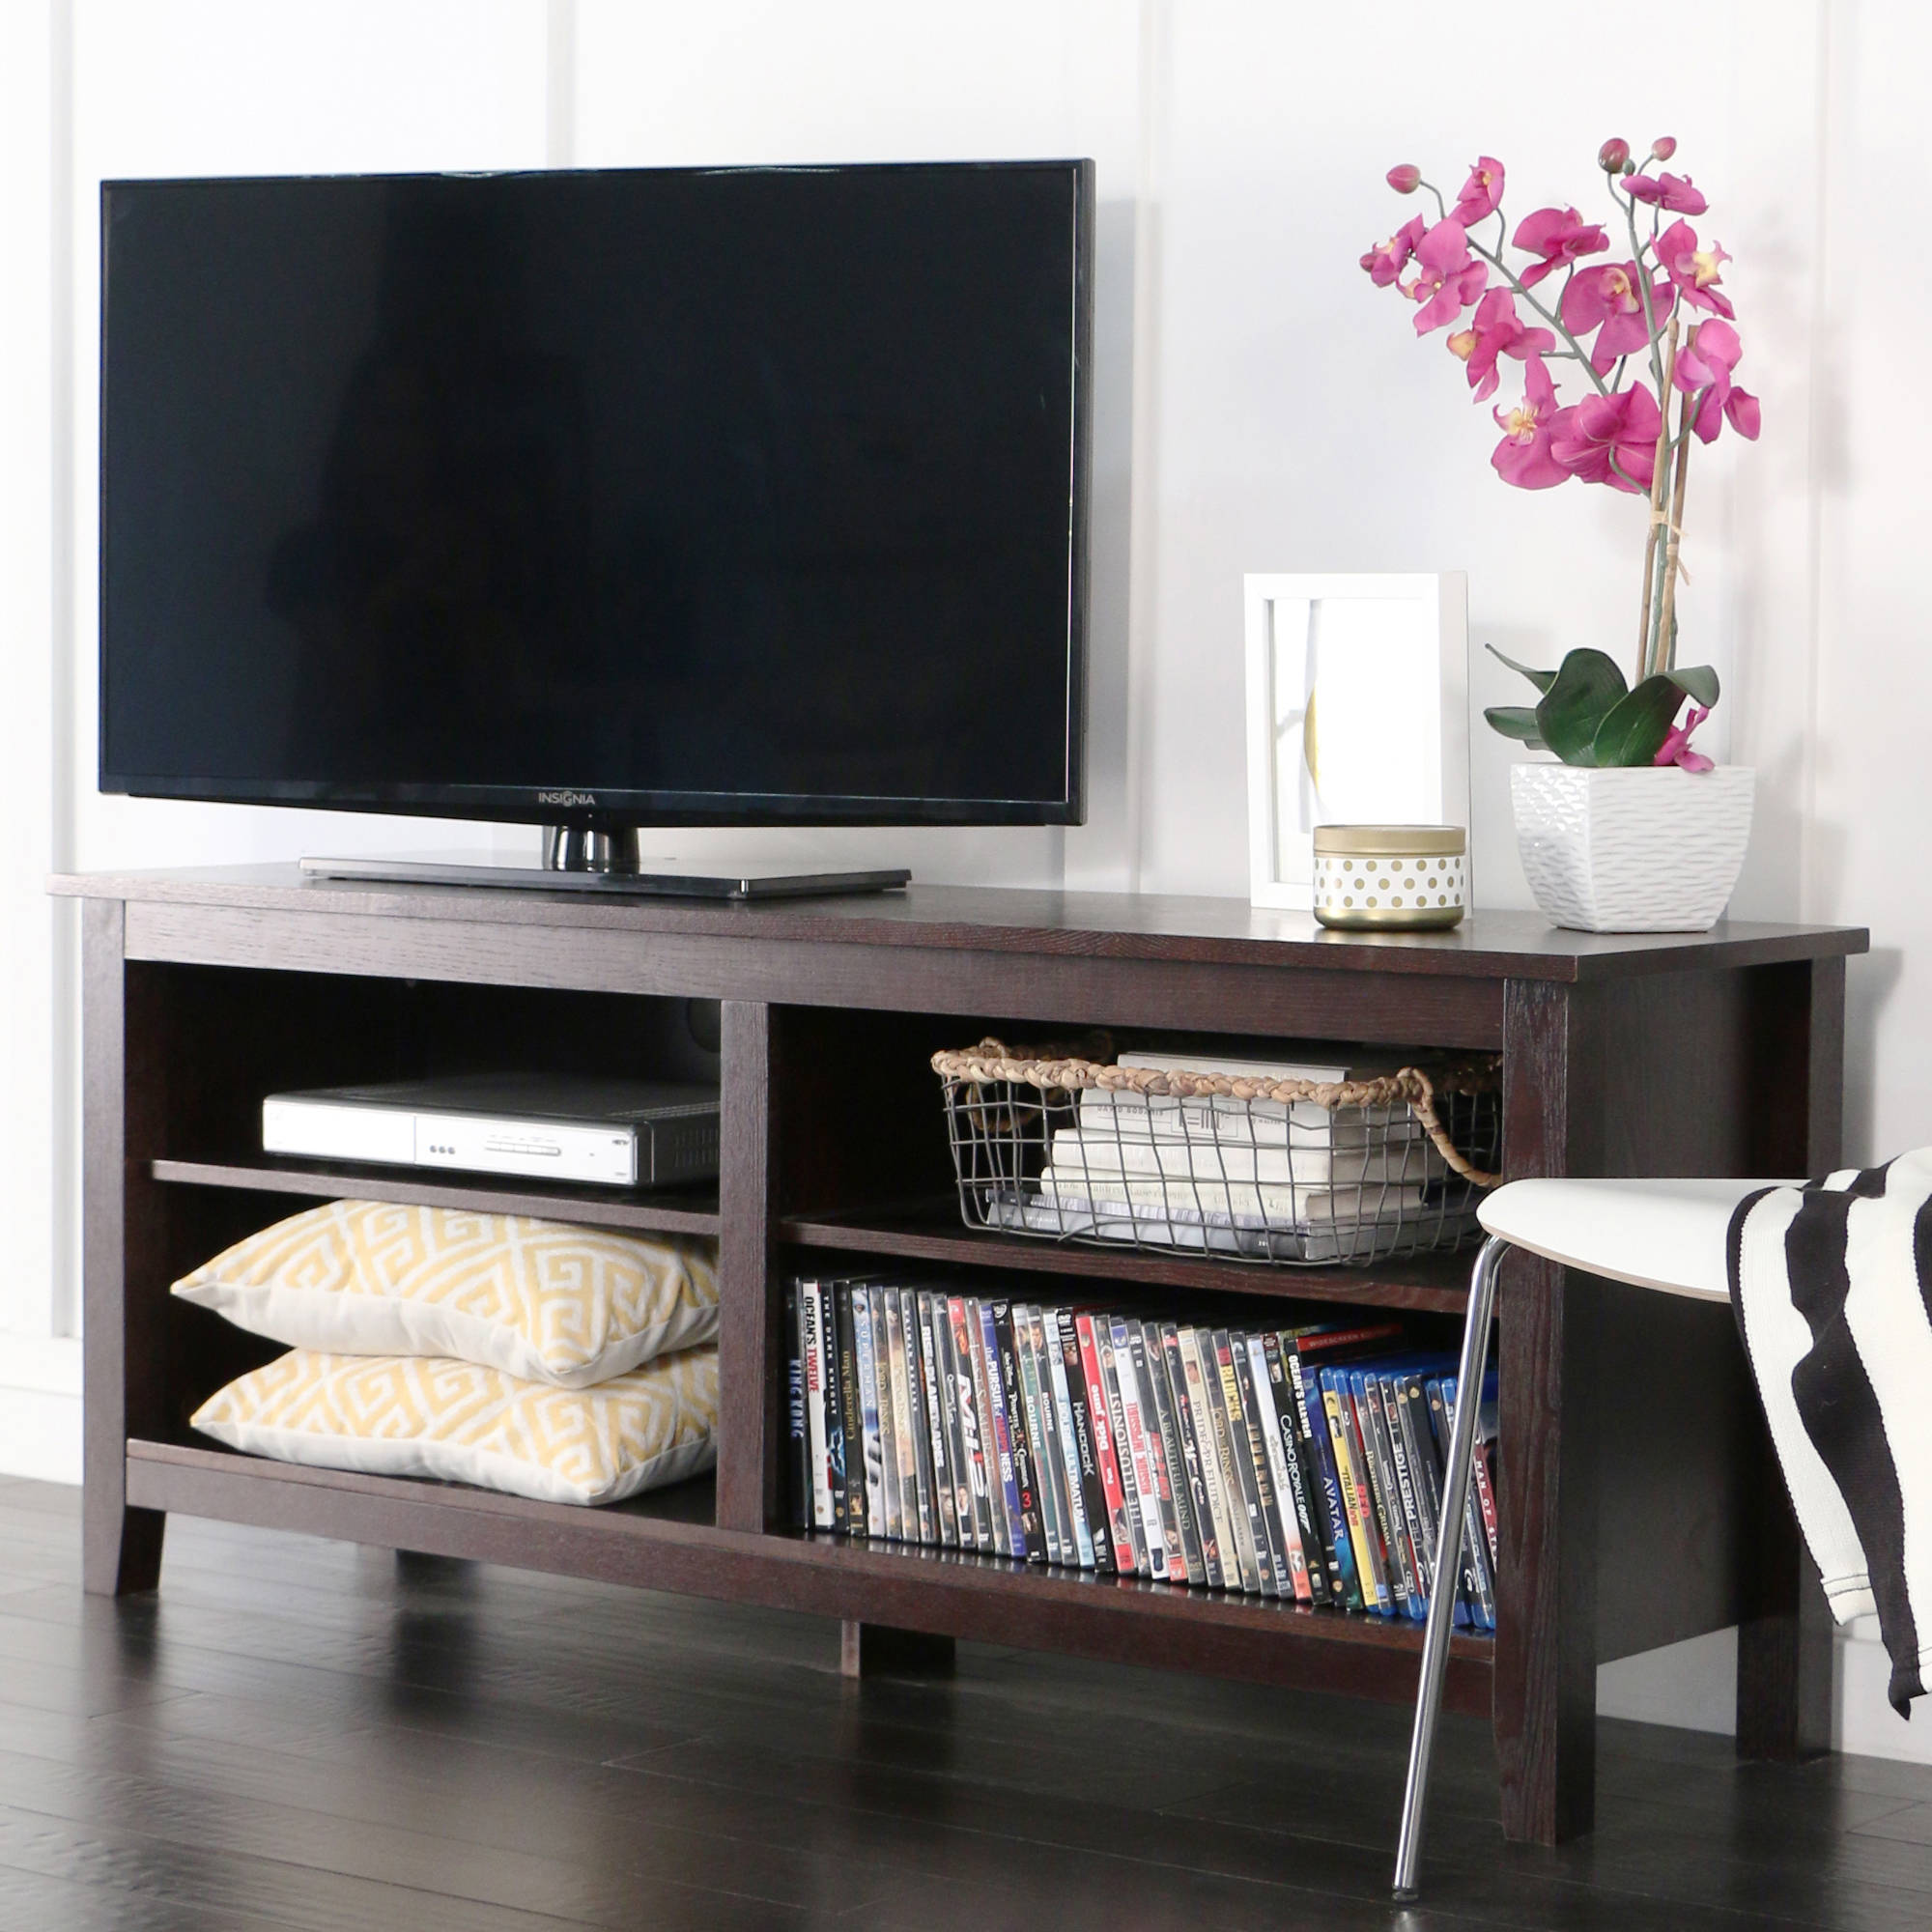 Rustic Wood TV Stand Drift Entertainment Center Media